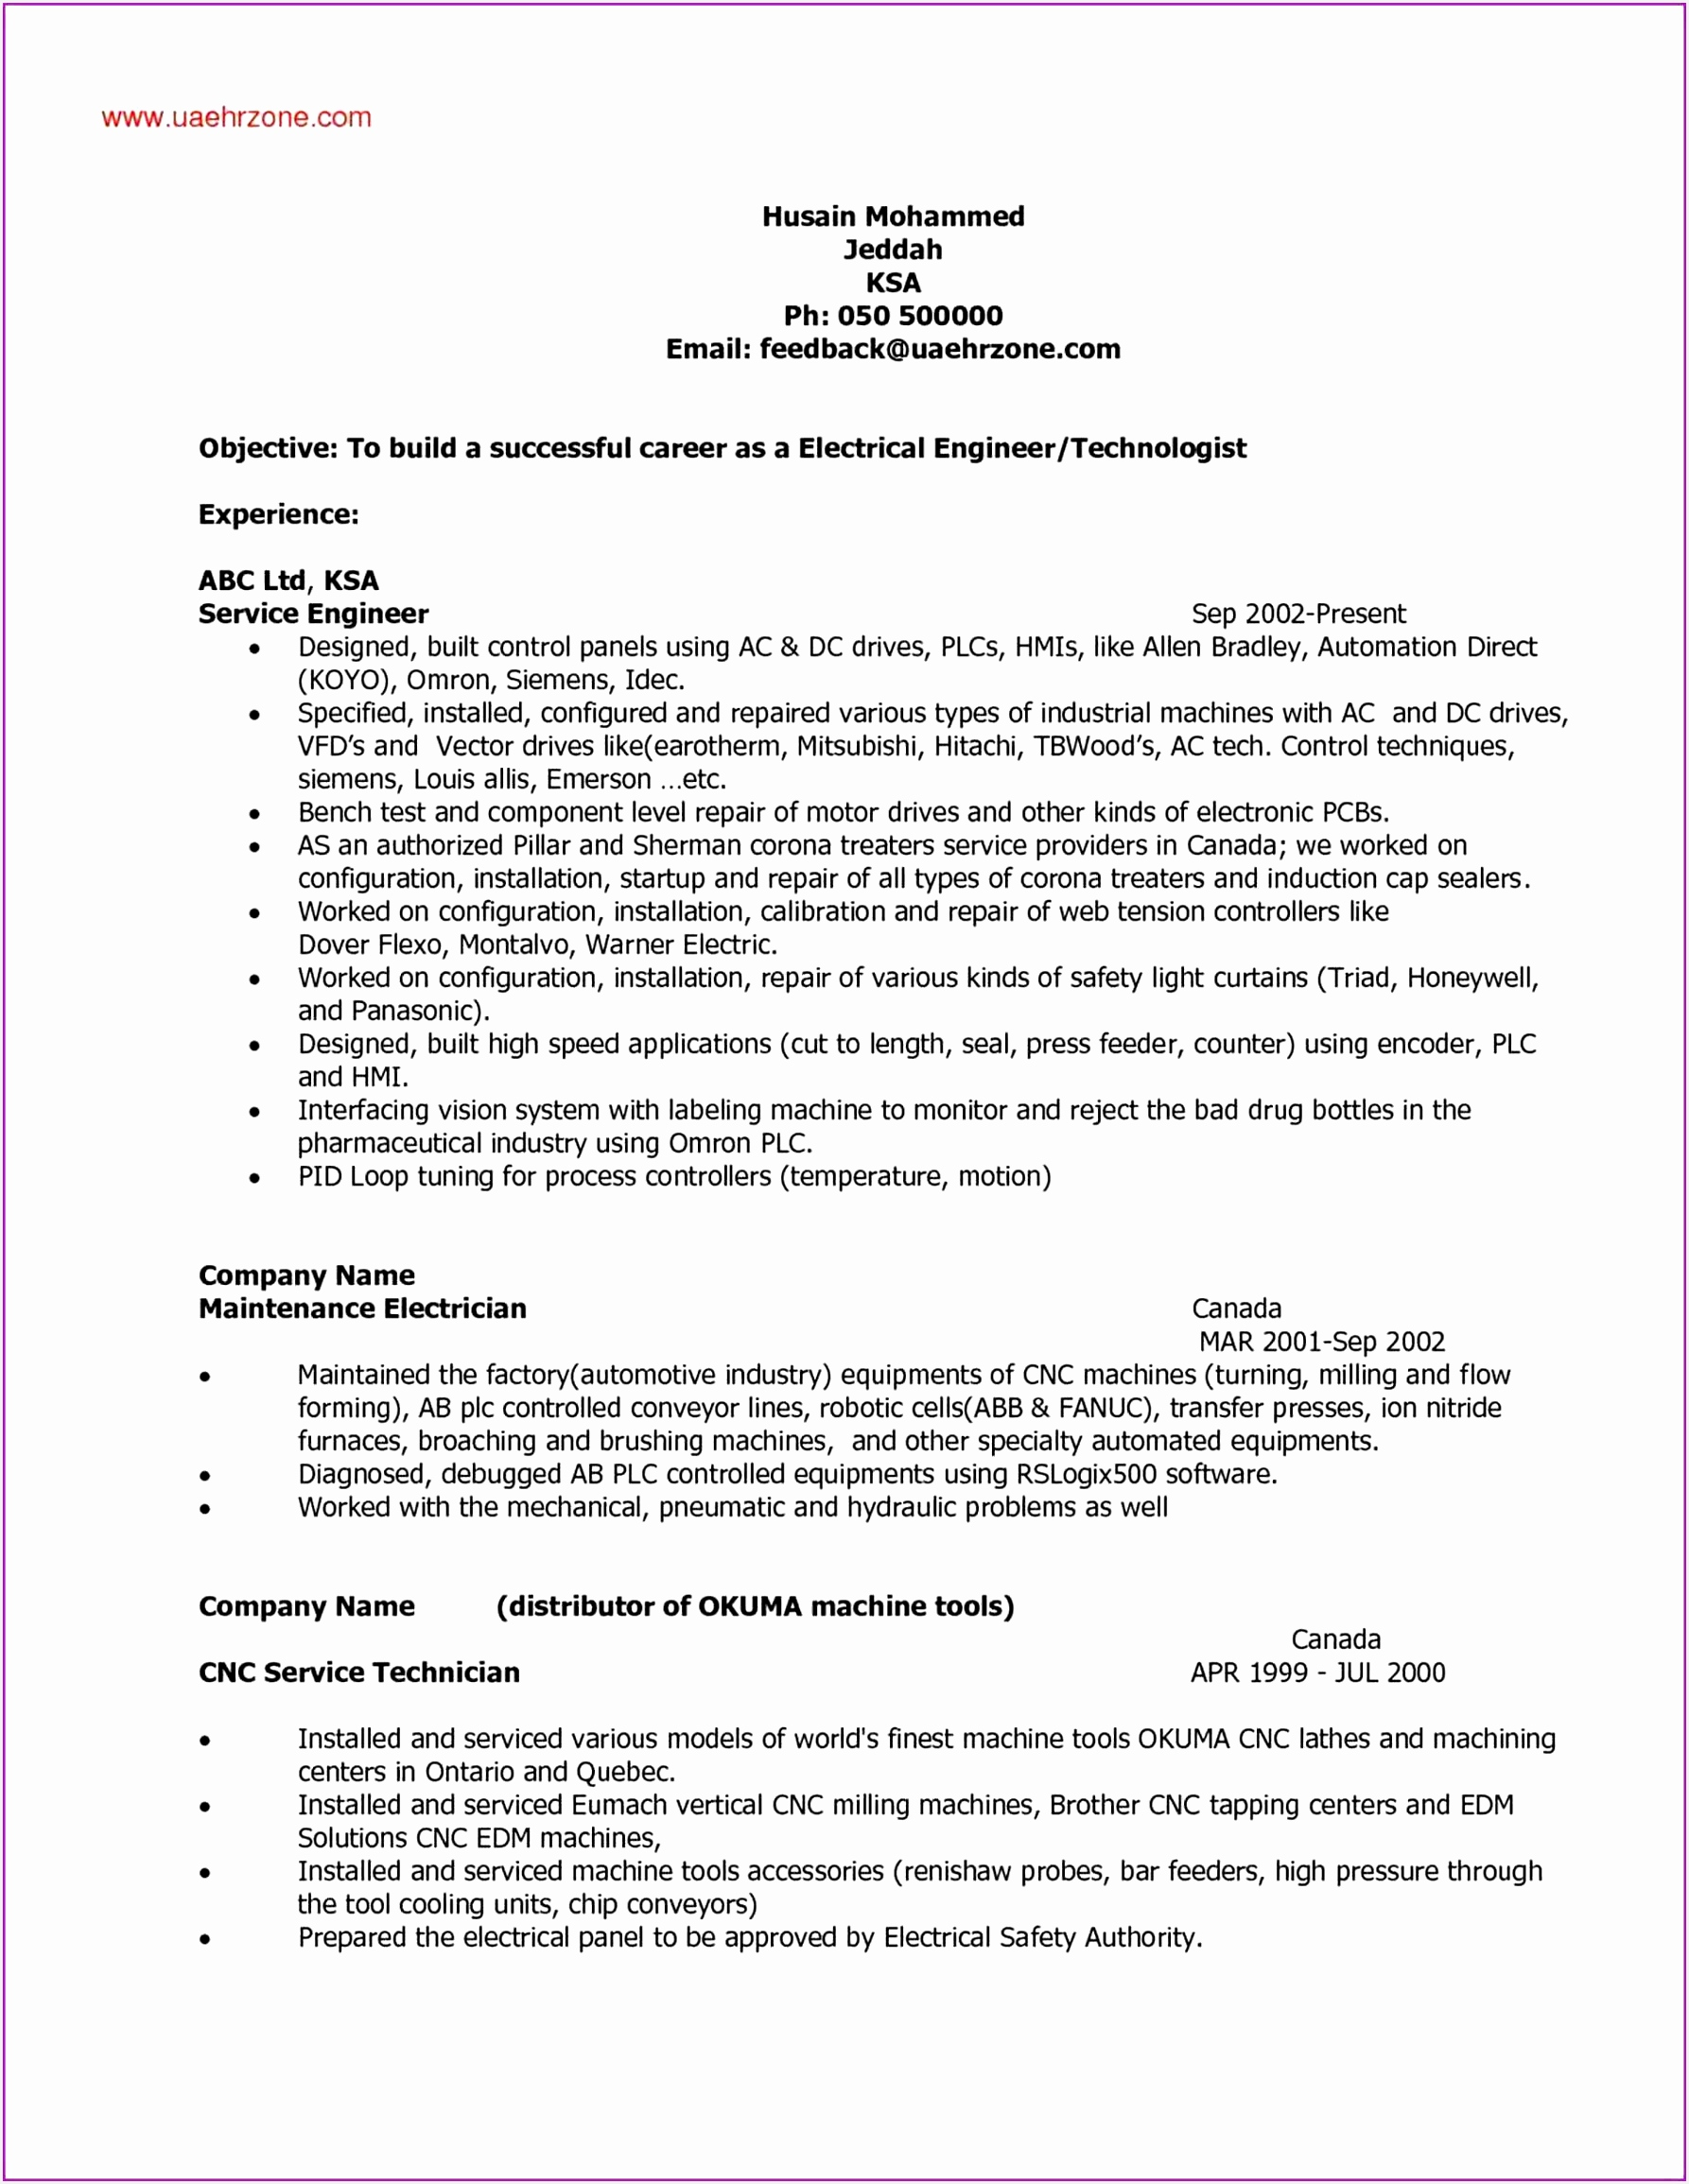 Contract Stress Engineer Sample Resume Baadl Best Of Mechanical Sample Resume Luxury Luxury How to Write A Proper Resume Of Contract Stress Engineer Sample Resume Gjkbn Best Of Hvac Estimator Mechanical Engineer Cv Resume for Sales Beautiful